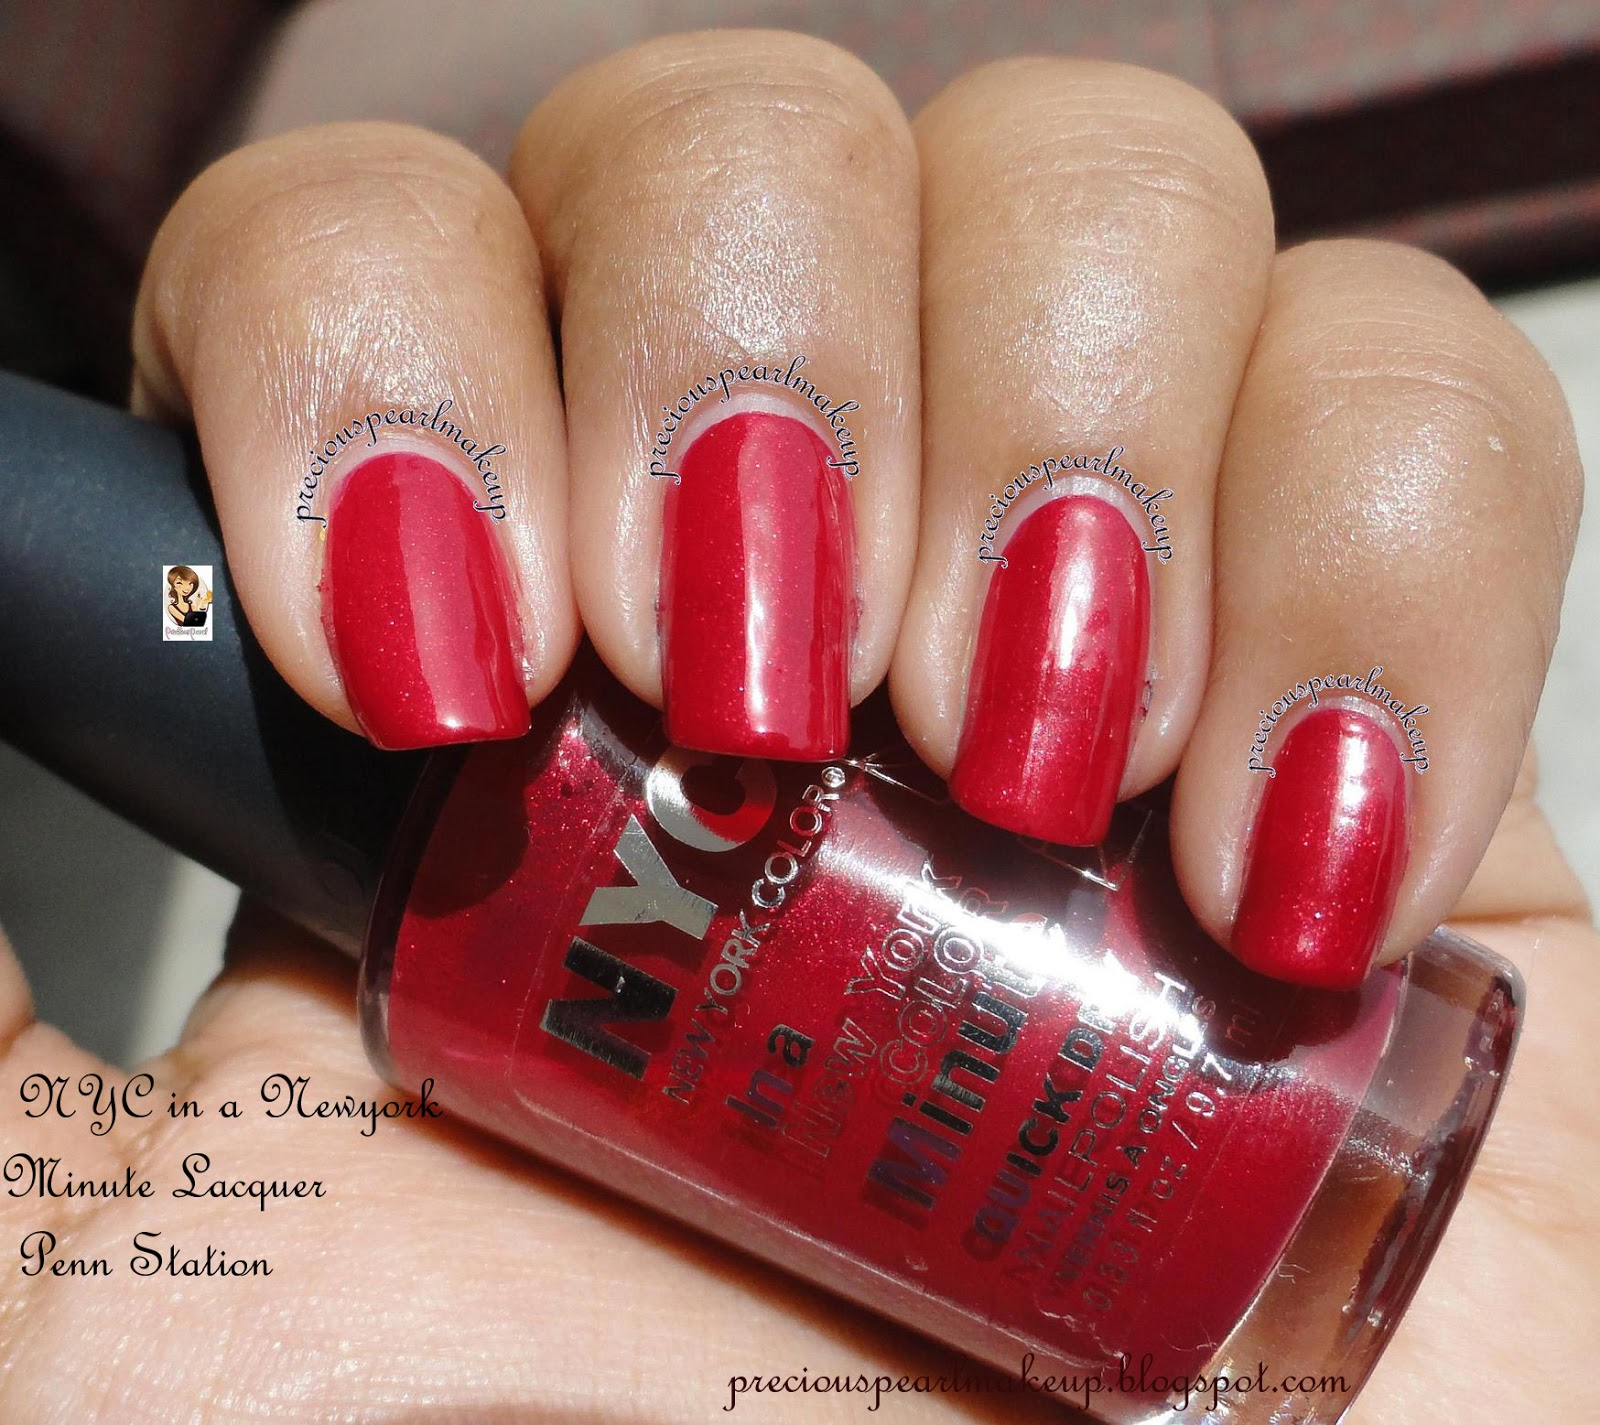 preciouspearlmakeup: NYC In a New York Color Minute Quick Dry Nail ...